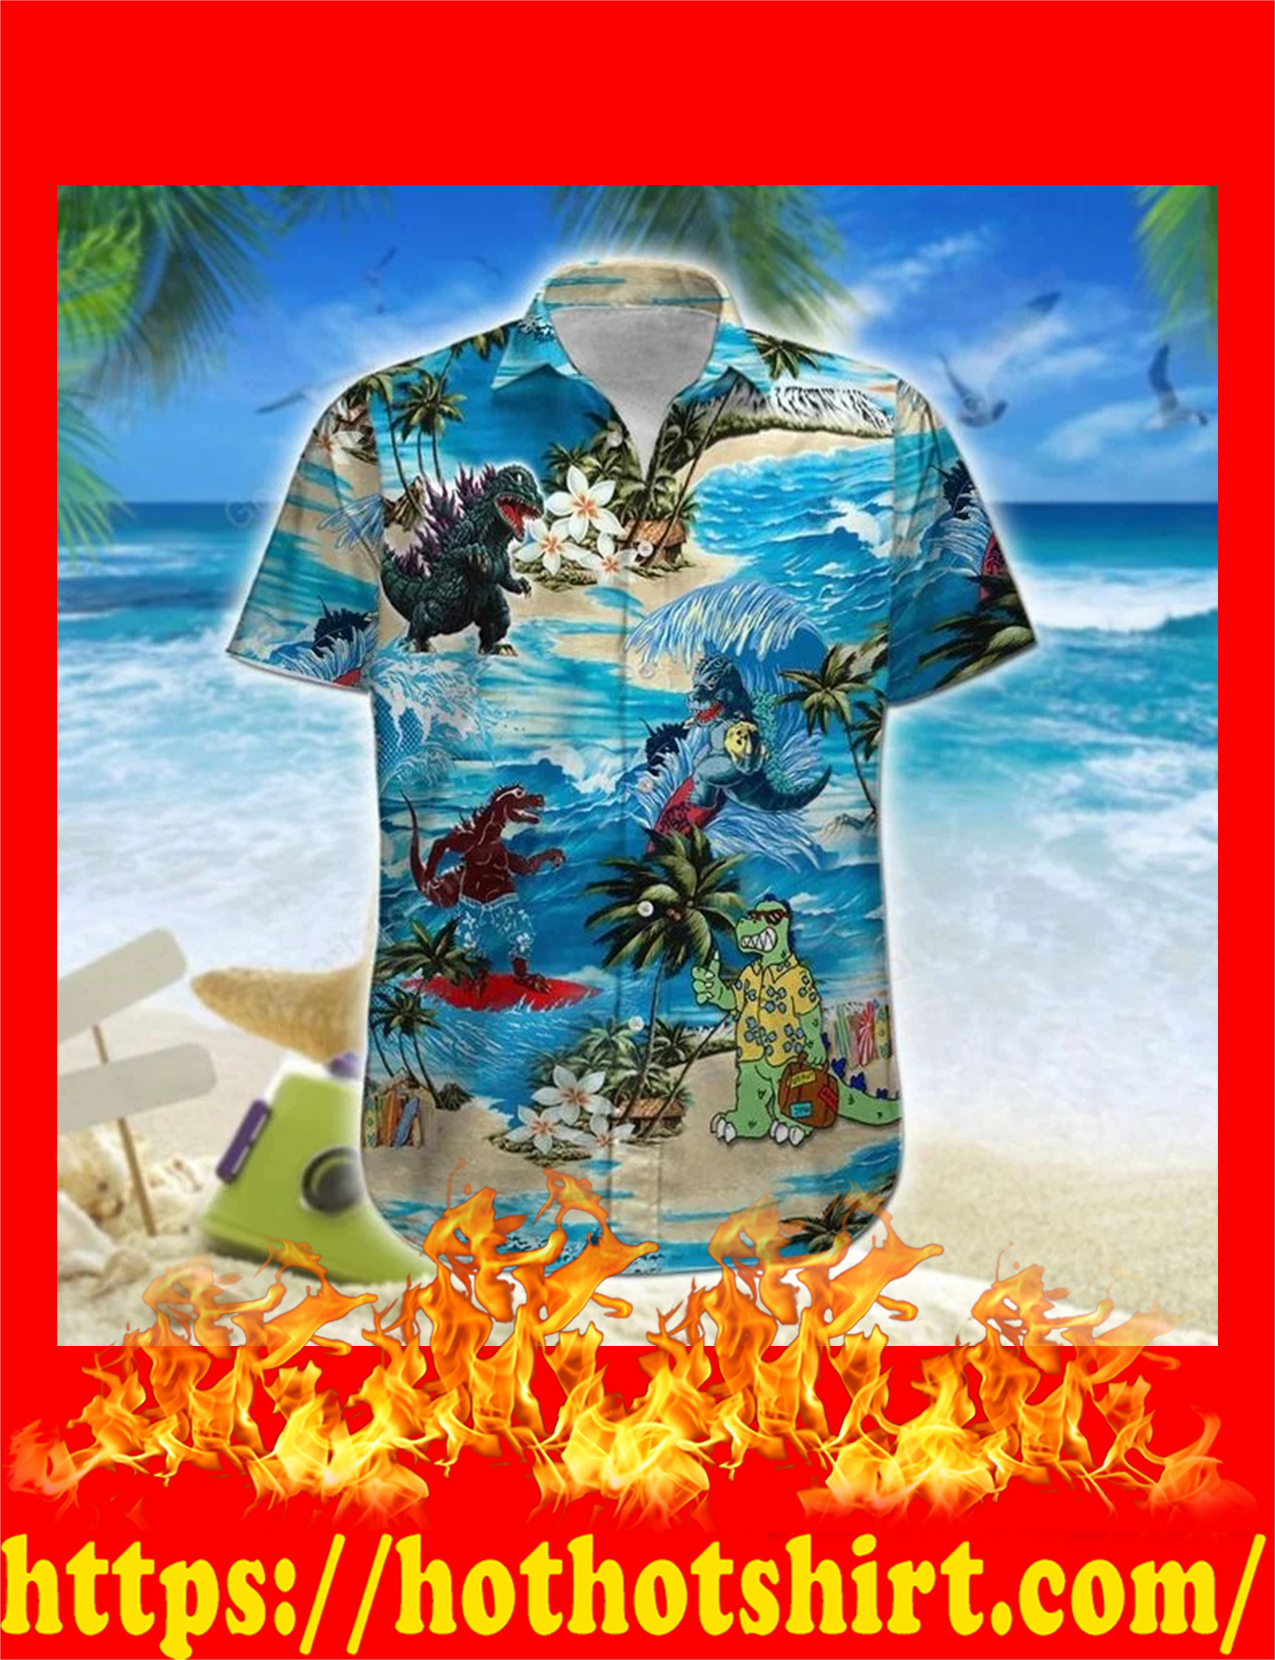 Godzilla hawaiian shirt and short 2